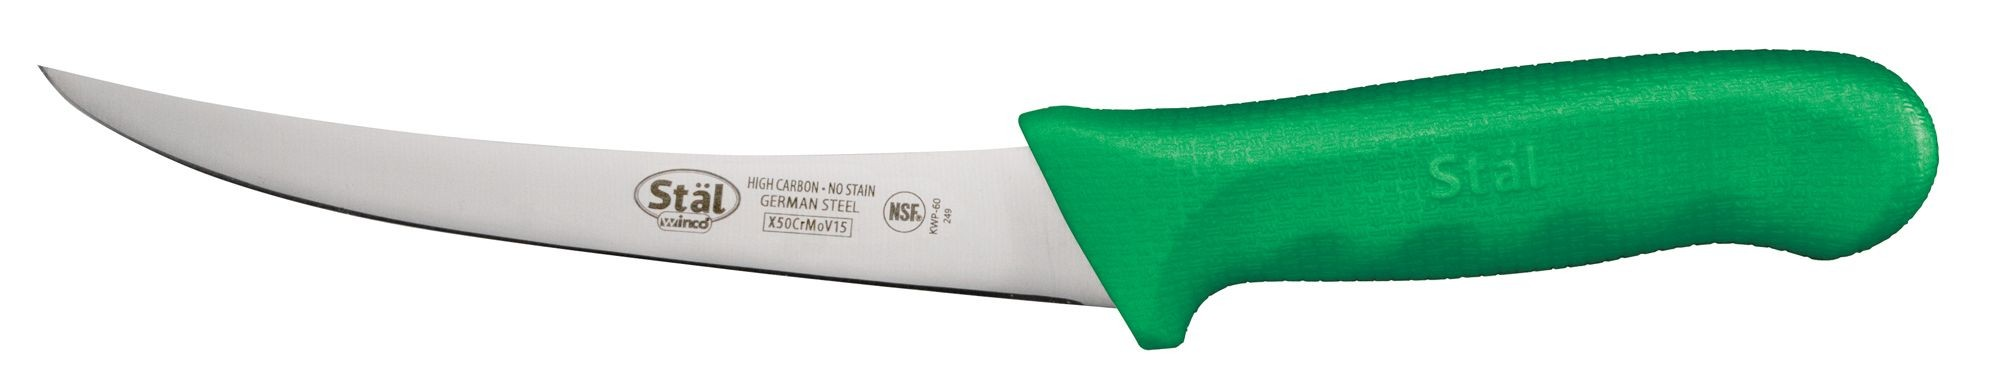 """Winco KWP-60G Curved 6"""" Boning Knife with Green Handle"""